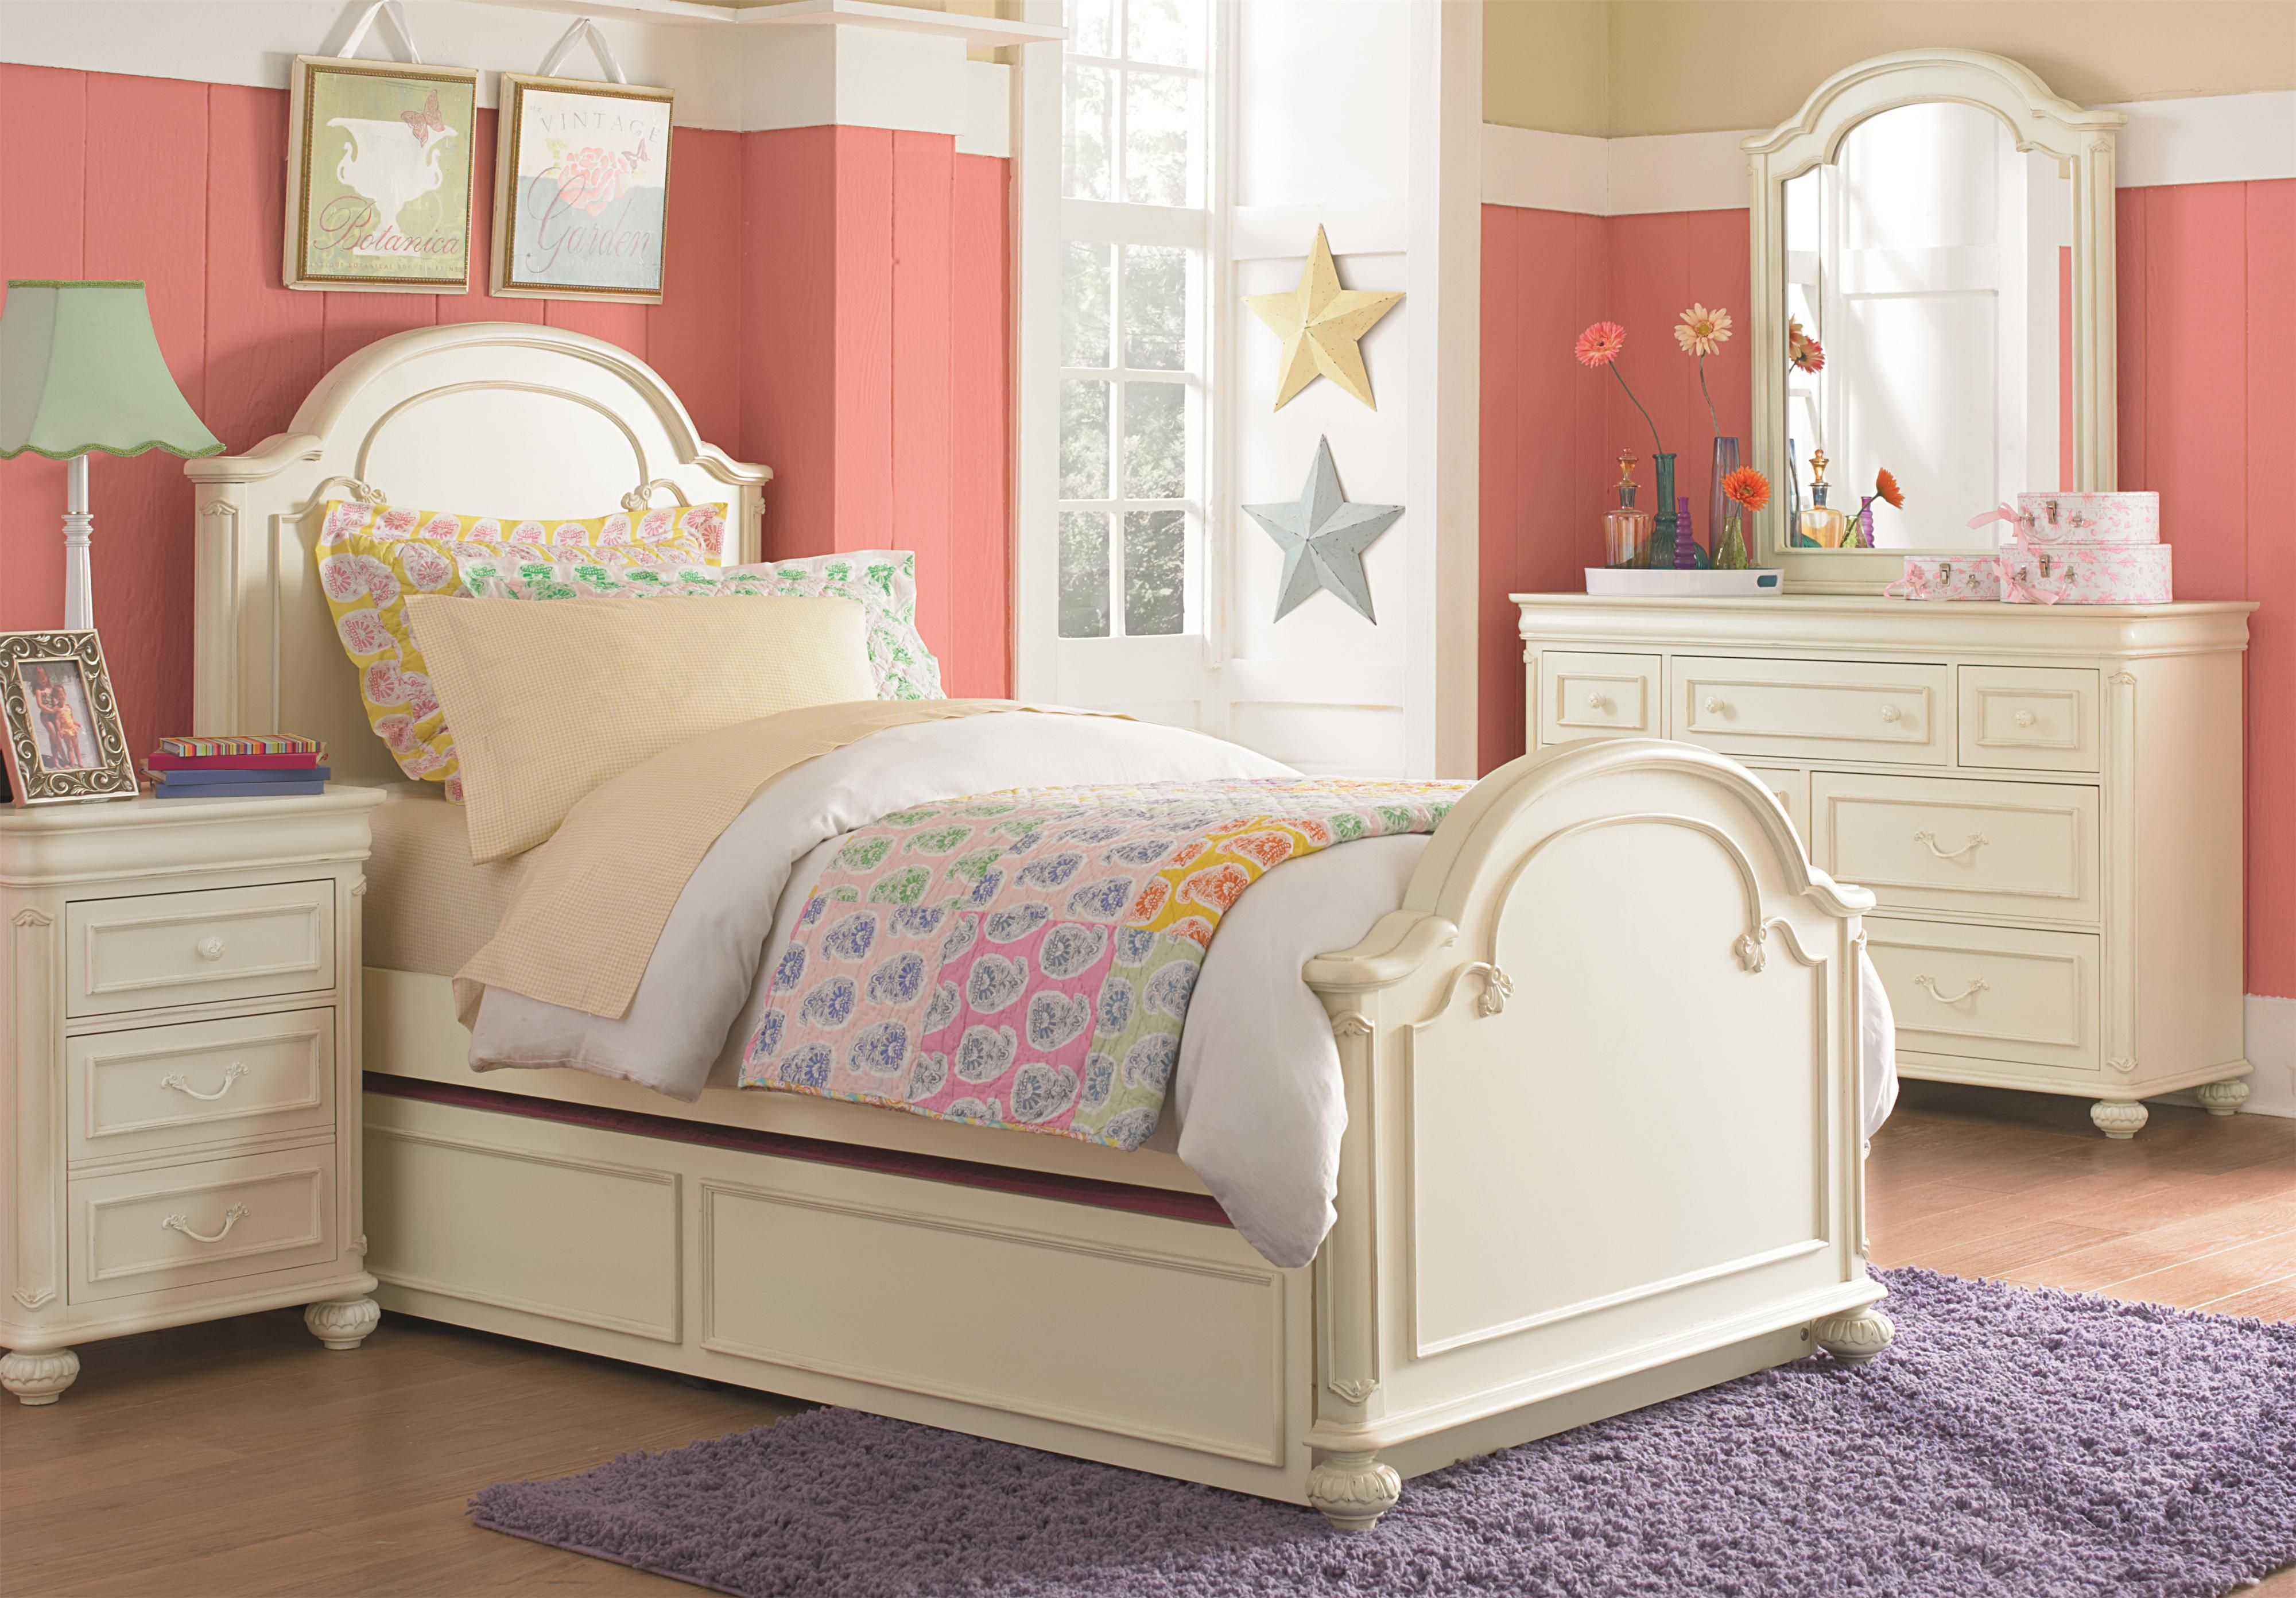 love this look for your daughter's bedroom  your thoughts